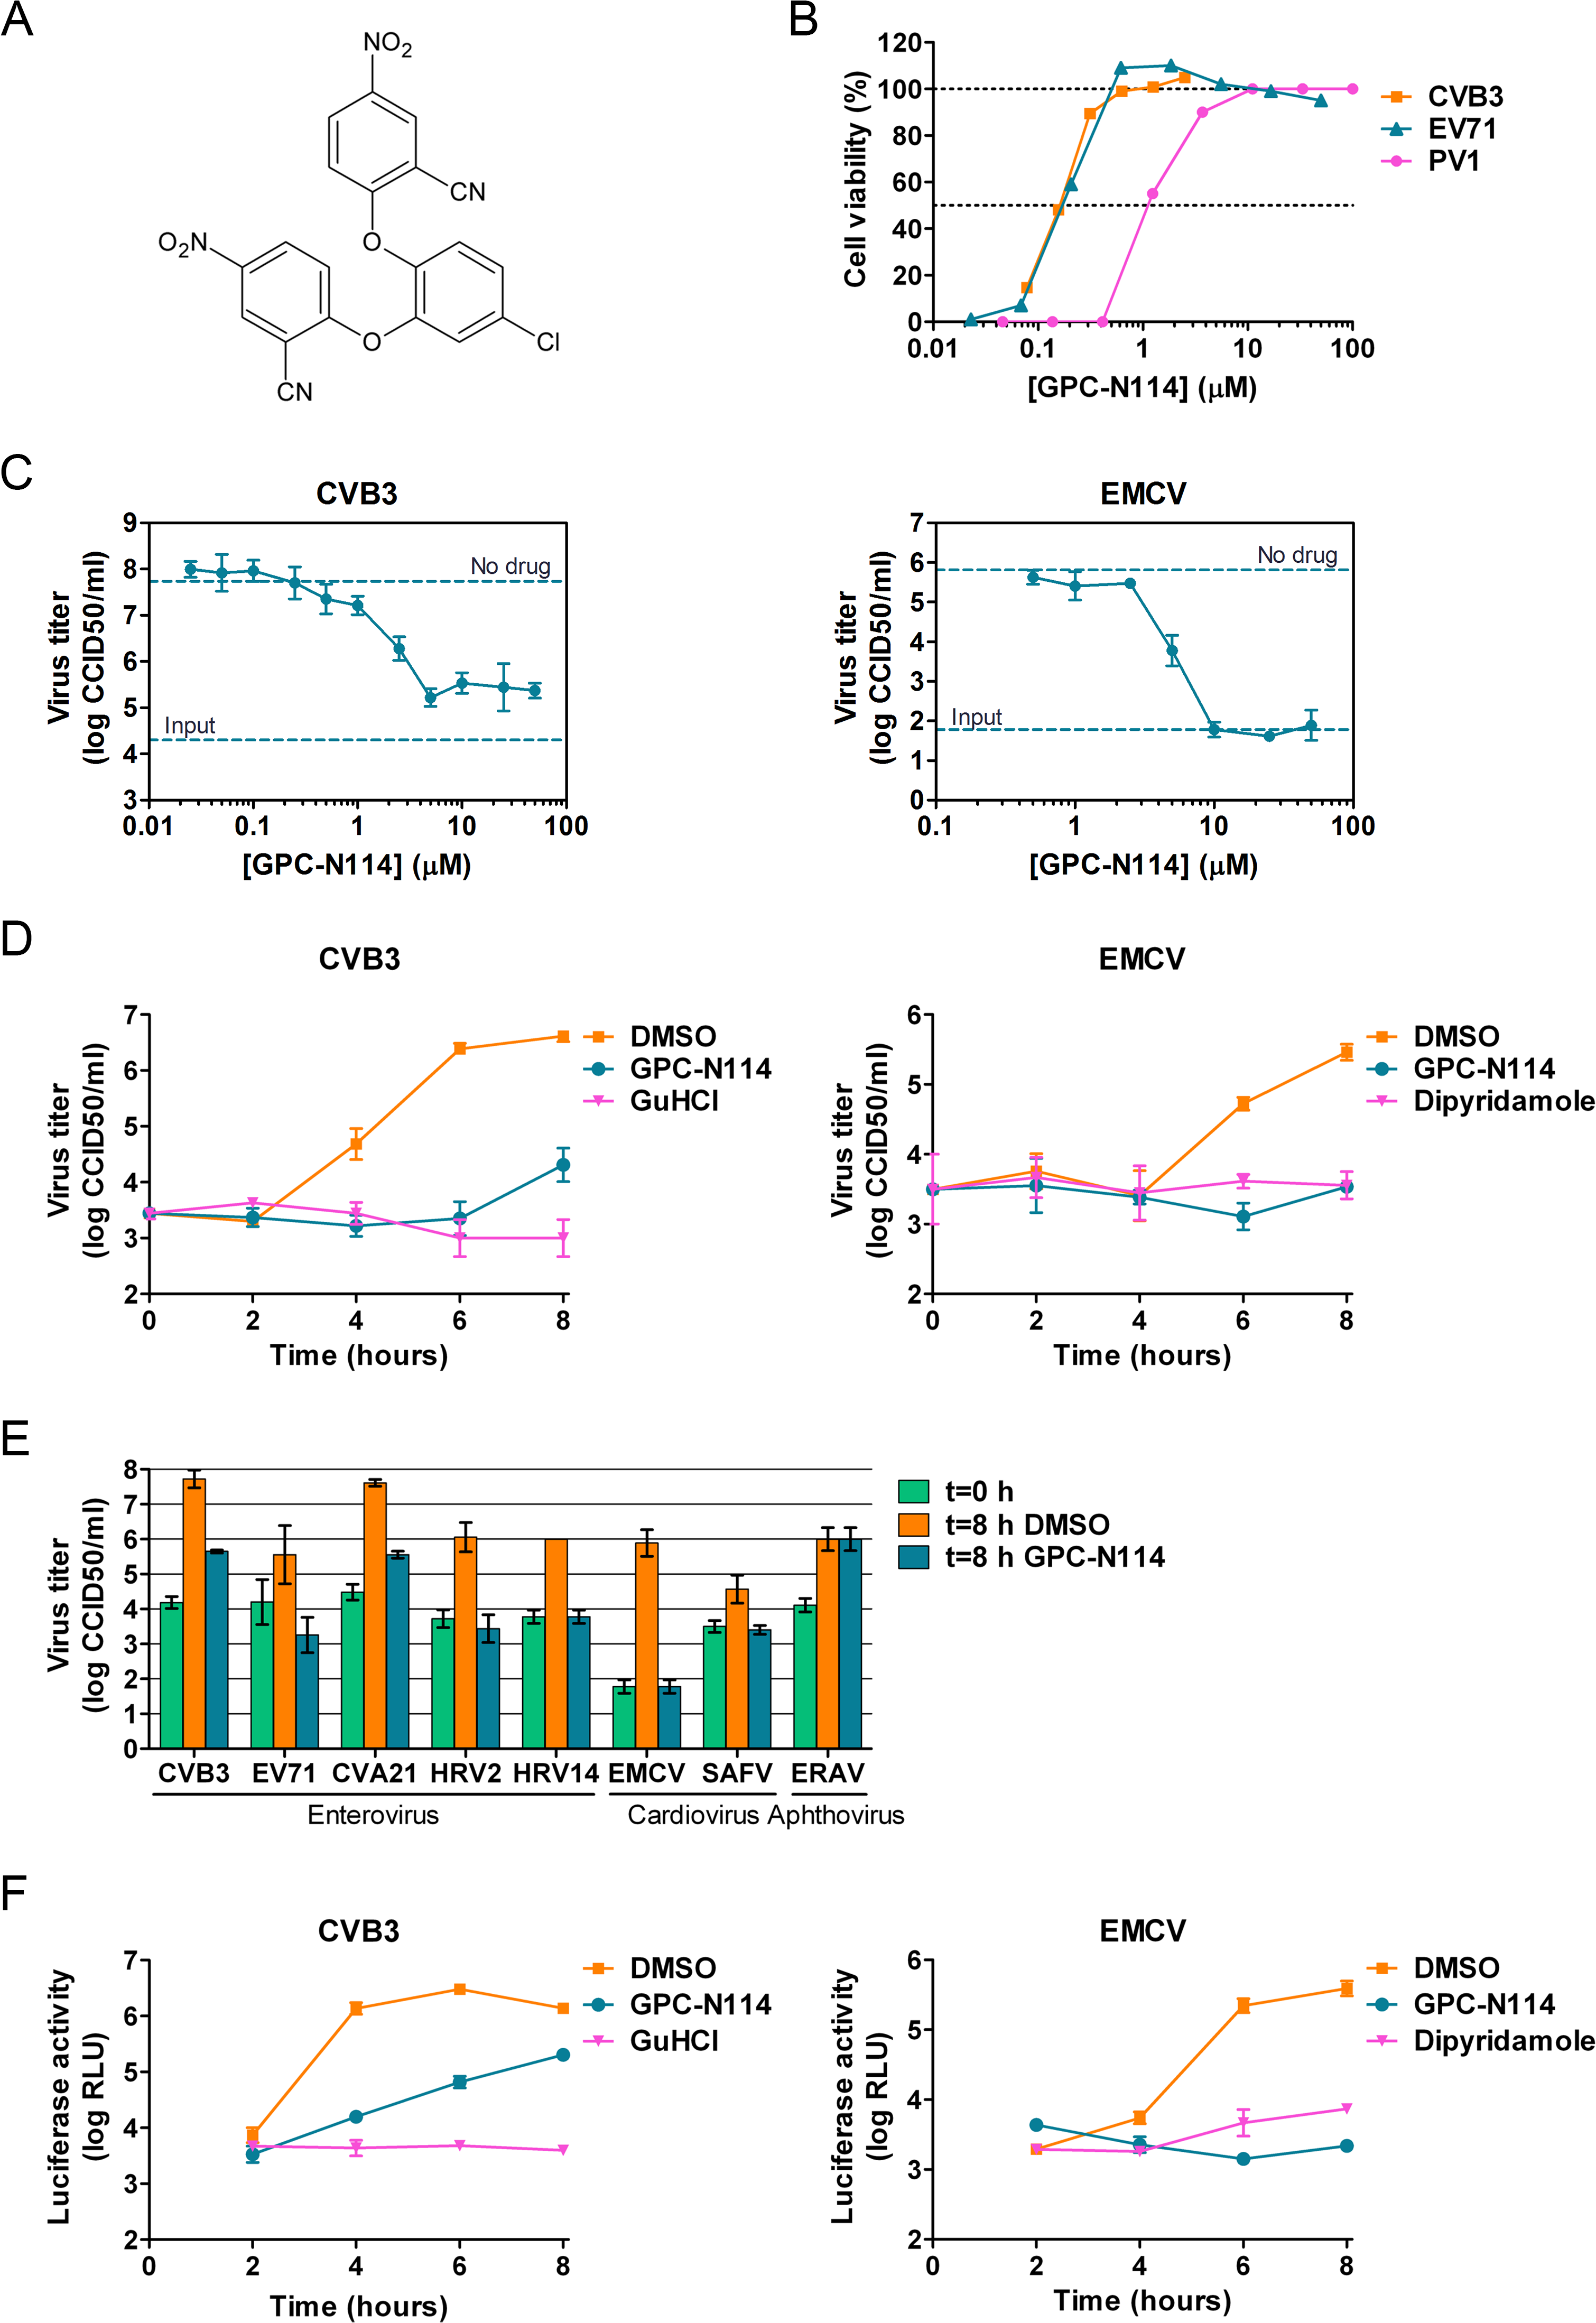 GPC-N114 inhibits picornavirus replication.